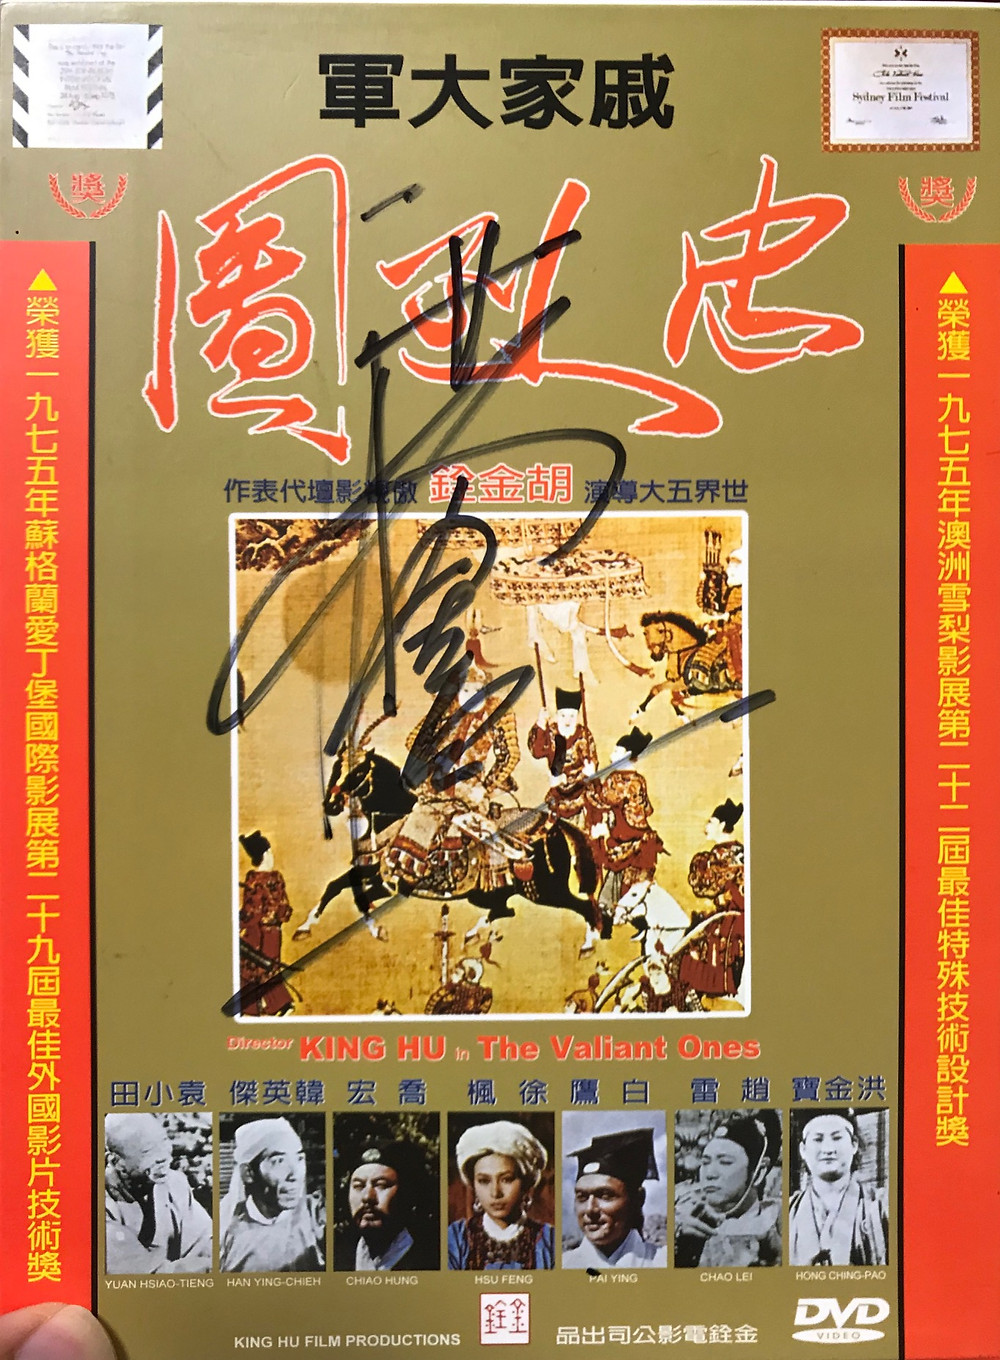 FILE PHOTO: Sammo Hung signed on my DVD cover of The Variant Ones (1975)  ©Ryota Nakanishi